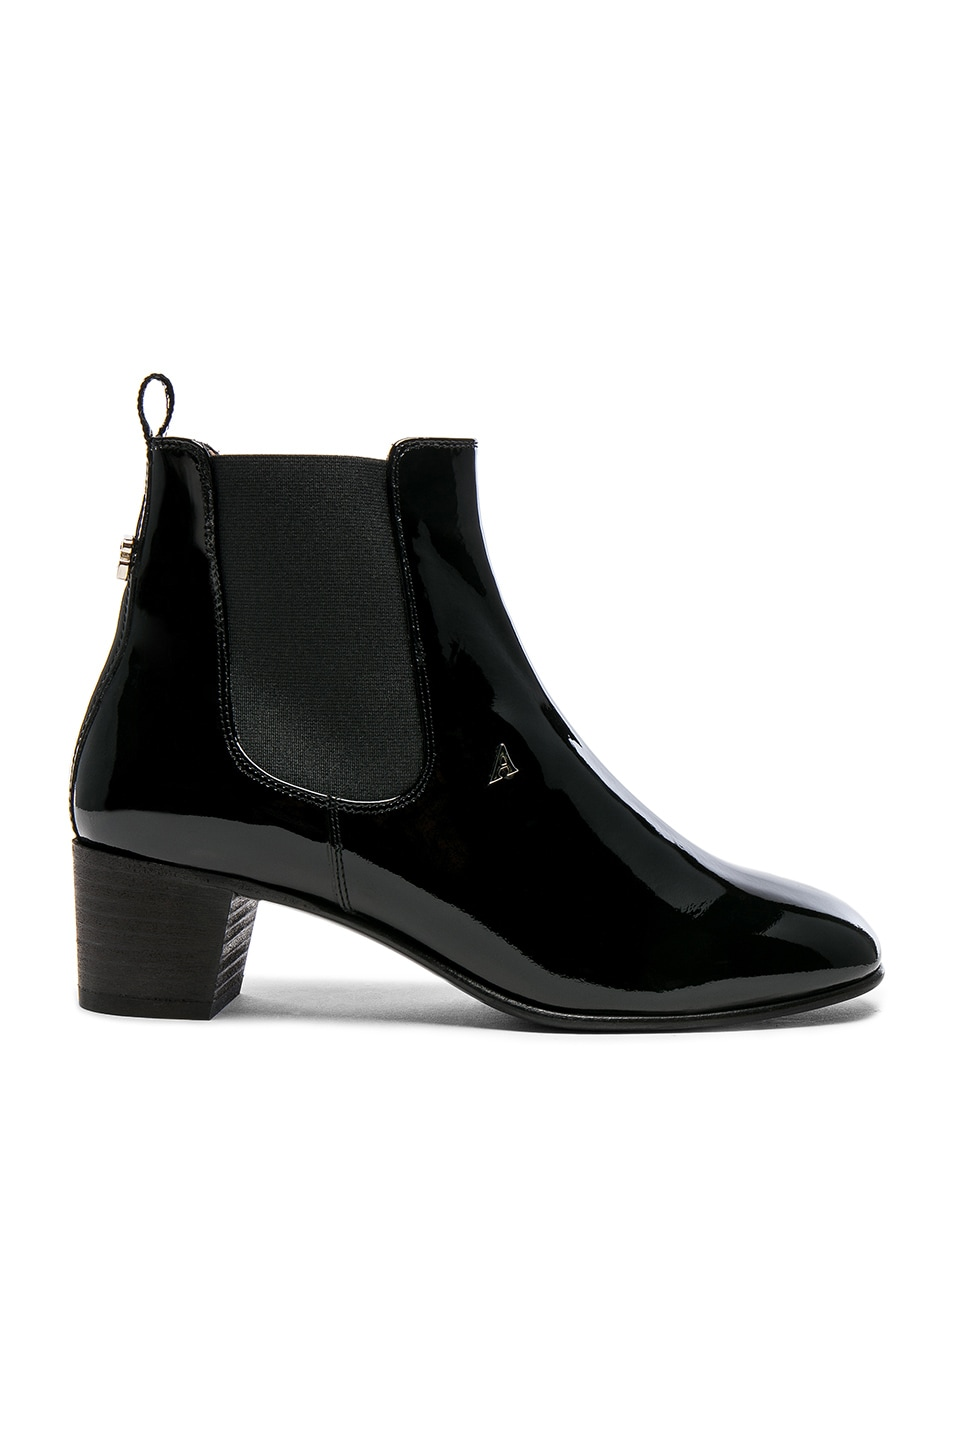 Image 1 of Acne Studios Patent Leather Hely Boots in Black